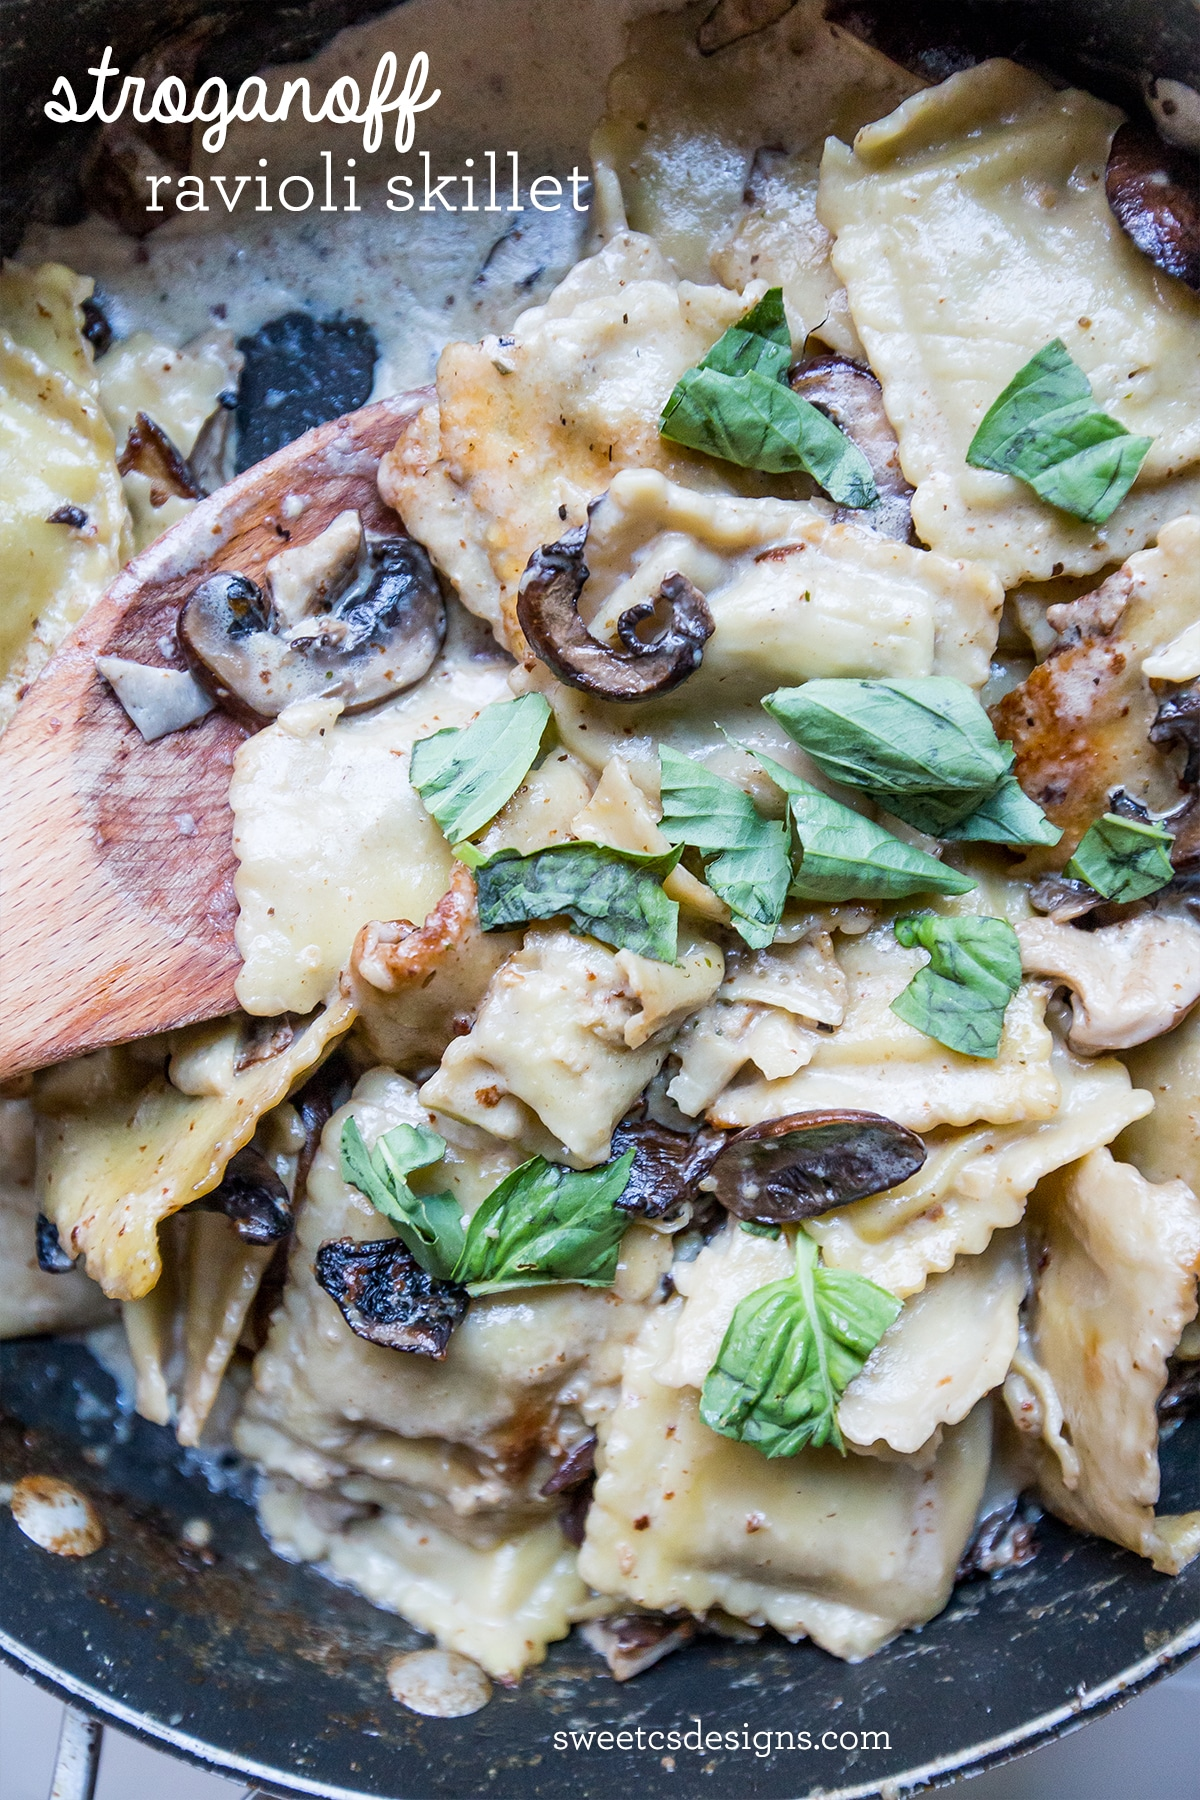 Stroganoff ravioli skillet- this one pot meal is so delicious and easy!